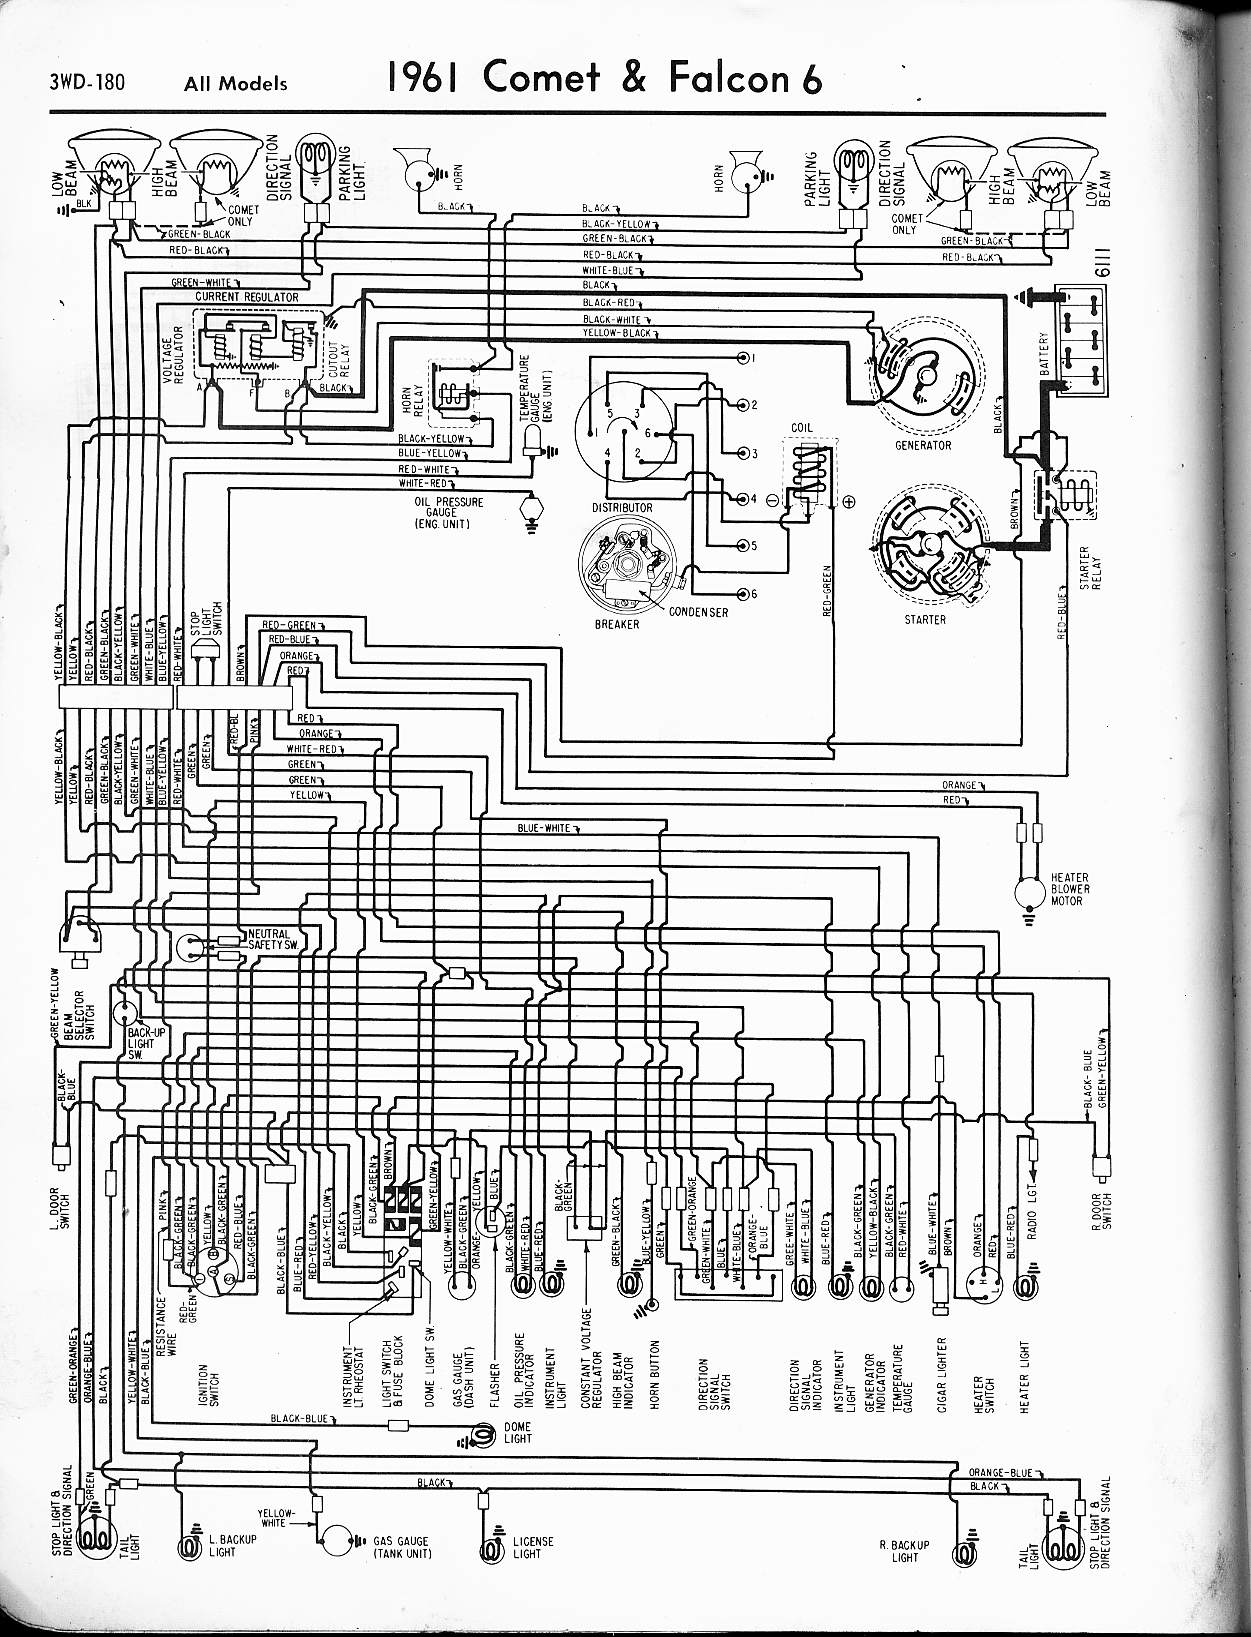 MWire5765 180 au falcon wiring diagram falcon guide \u2022 wiring diagrams j squared co  at pacquiaovsvargaslive.co